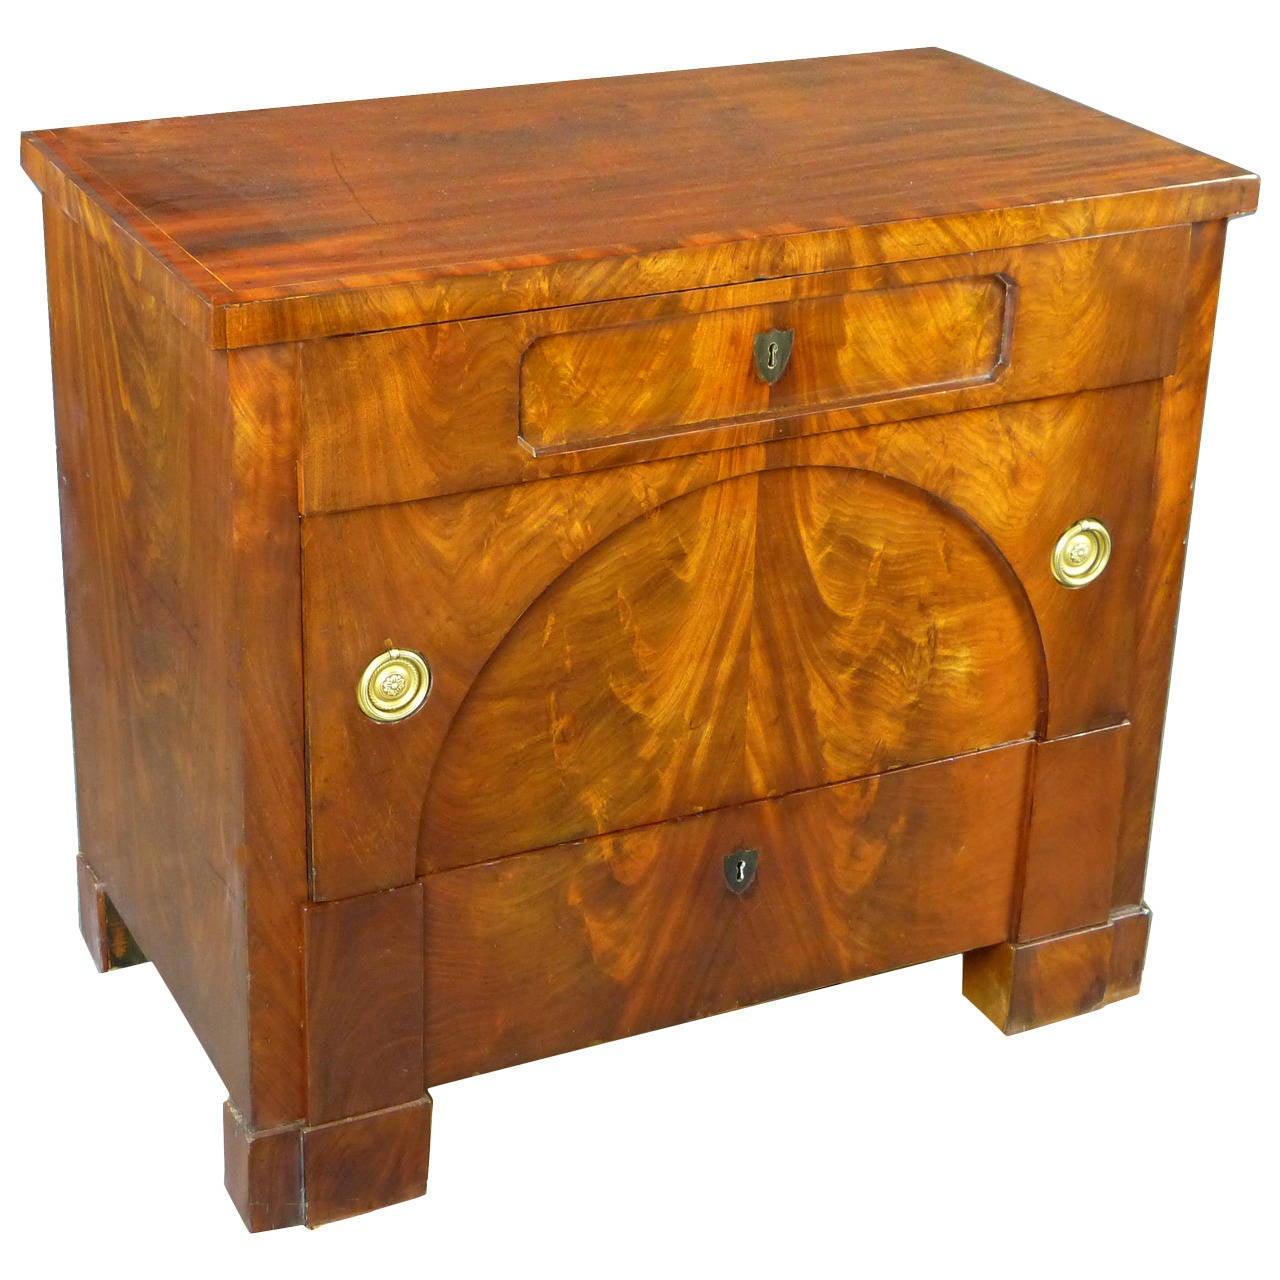 early 19th century biedermeier petite commode or chest of drawers for sale at 1stdibs. Black Bedroom Furniture Sets. Home Design Ideas